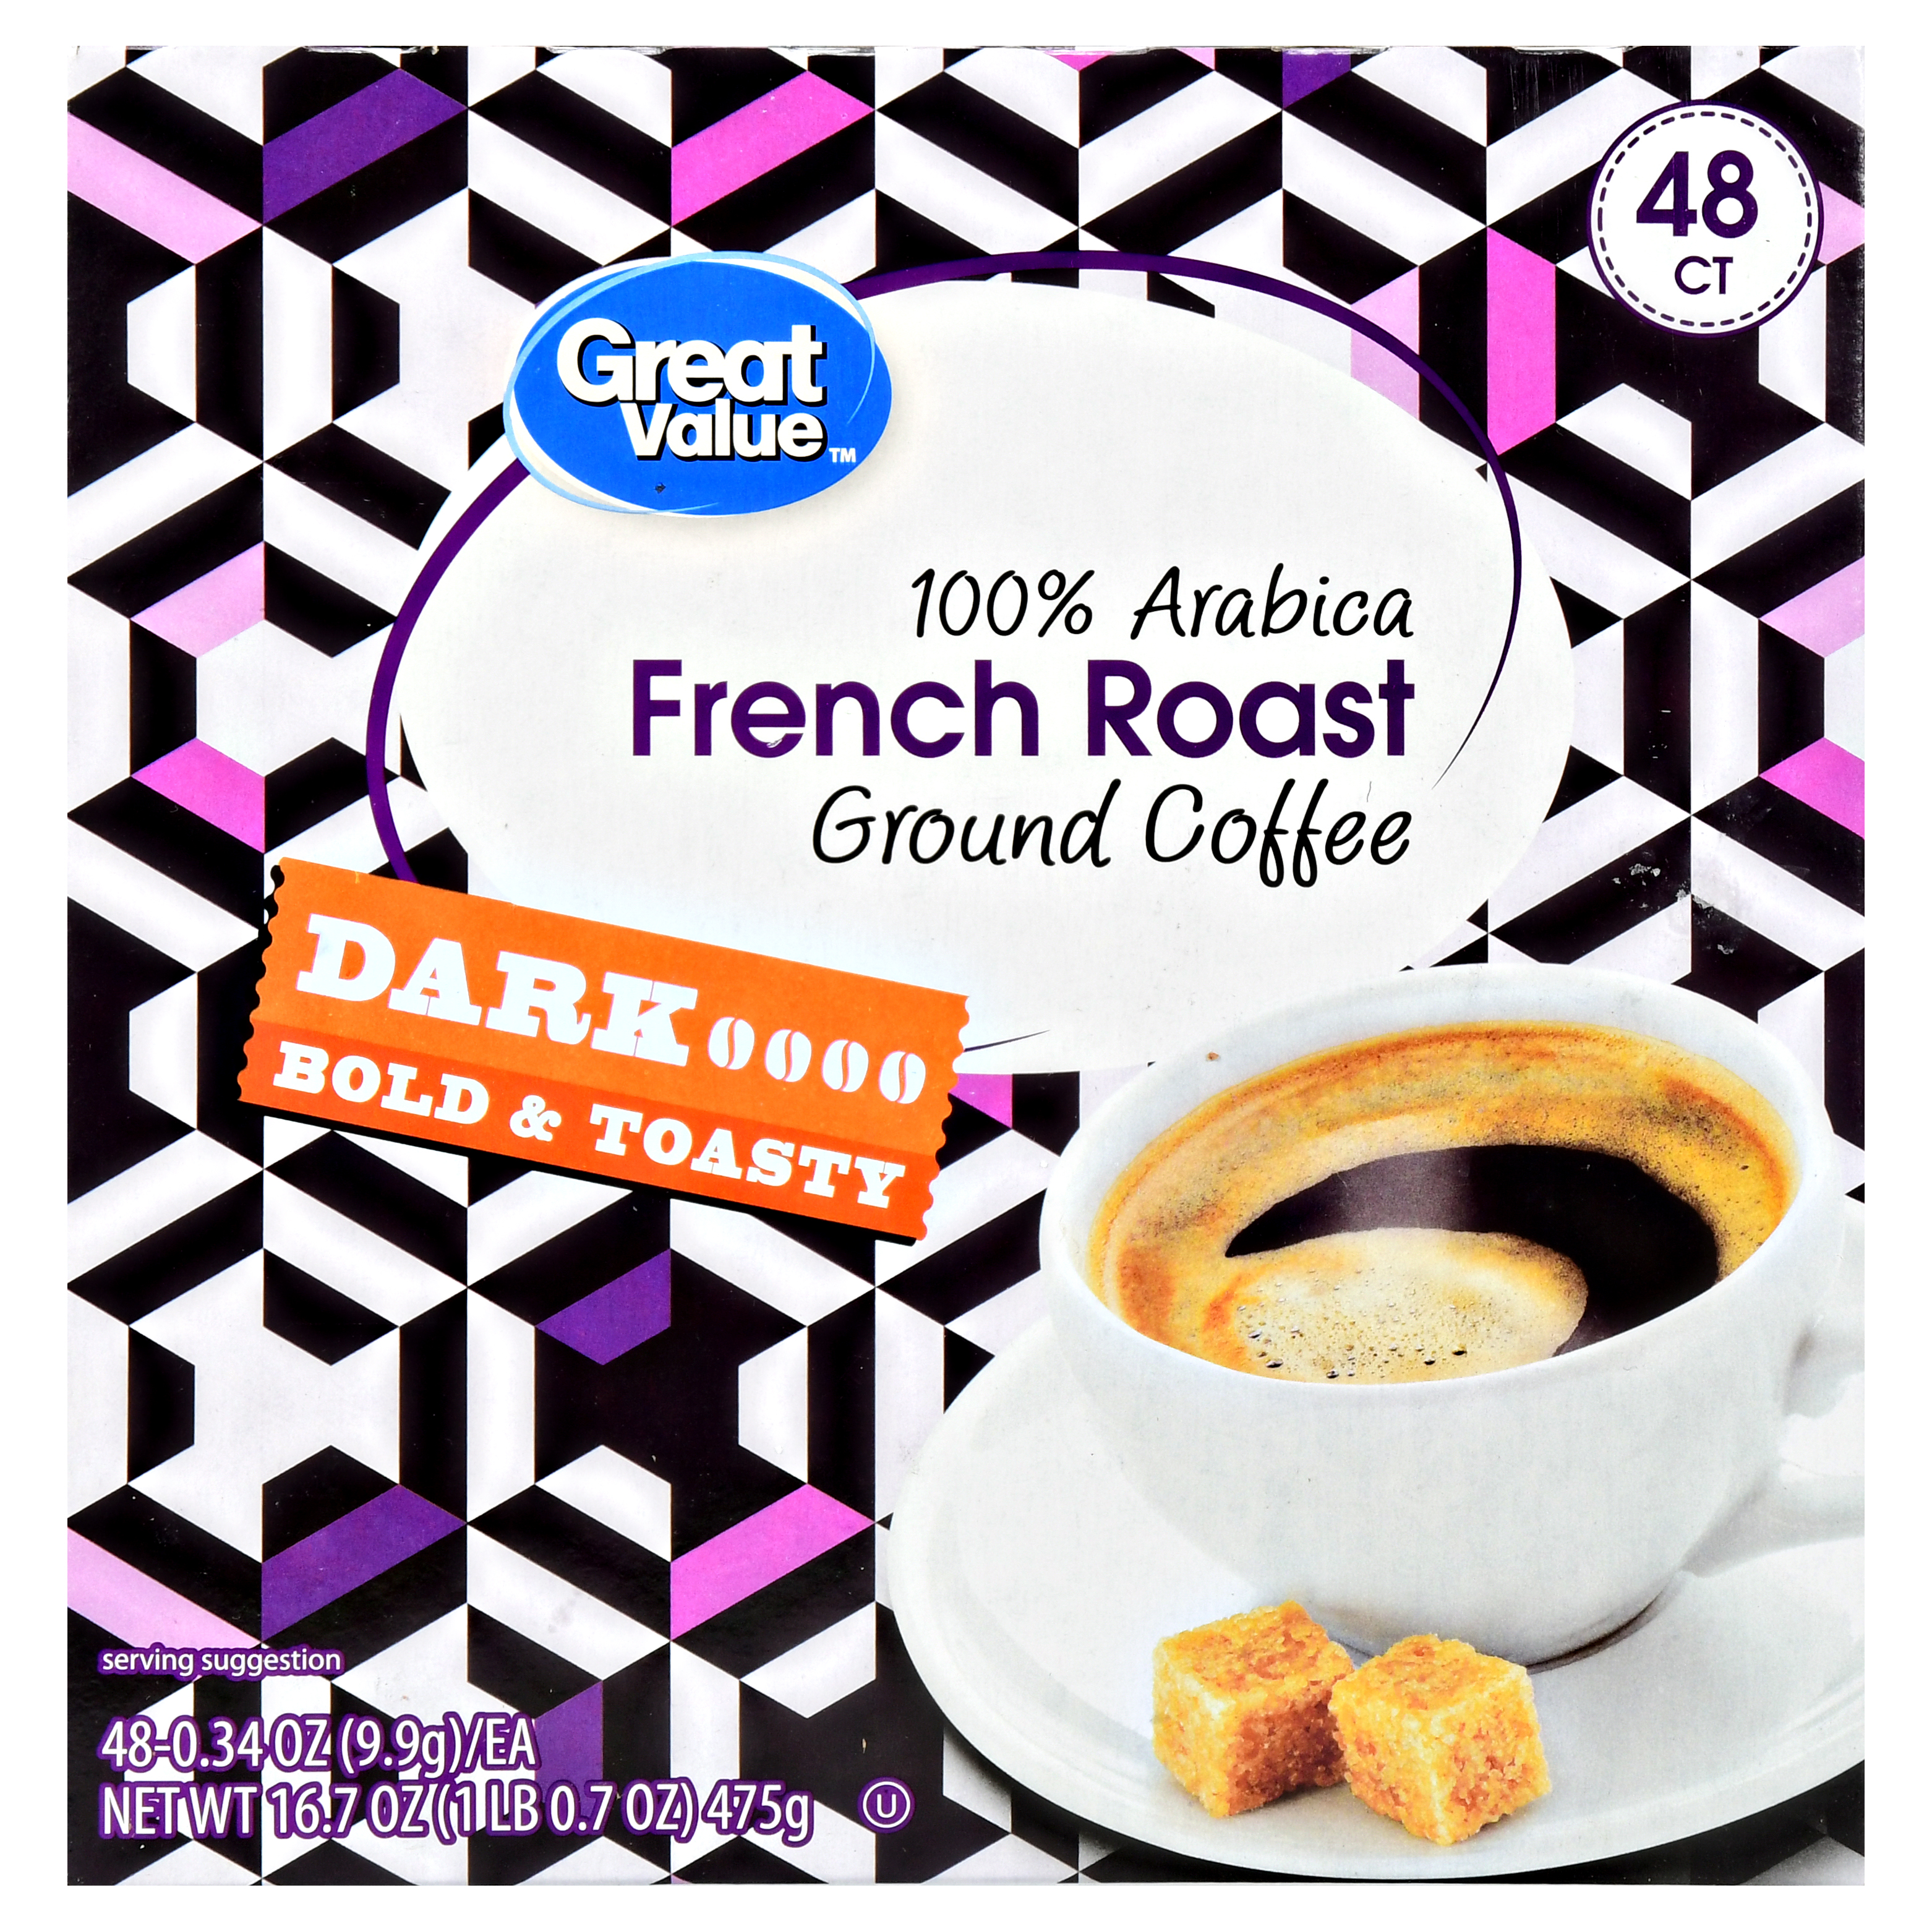 Great Value French Roast Ground Coffee Single Serve Cups, Dark Roast, 48 Count